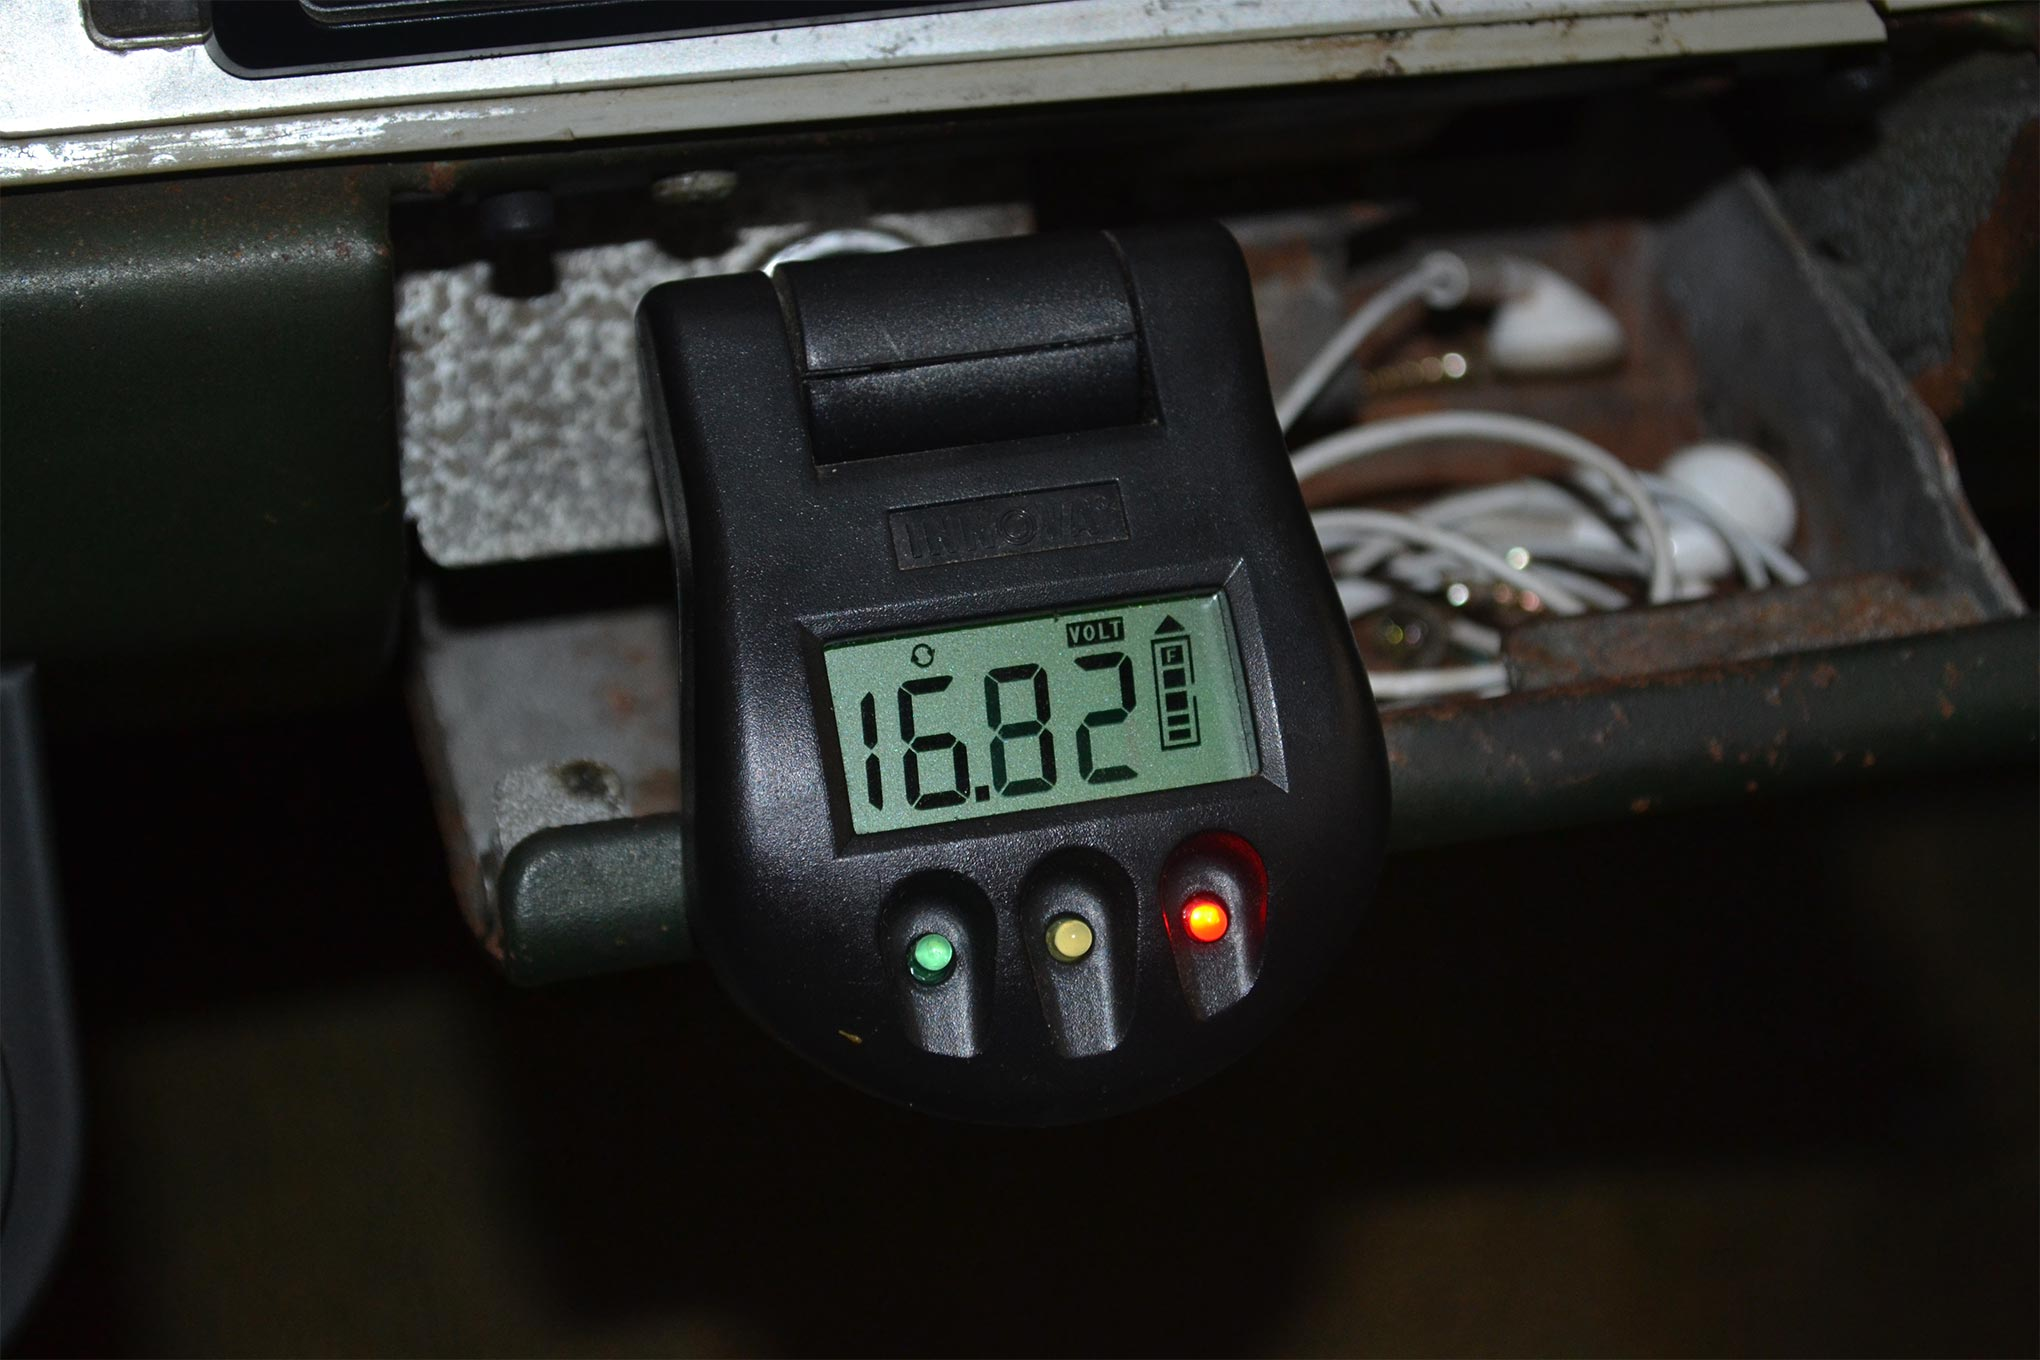 After hooking up this handy Innova voltage tester to our cigarette lighter, our eyes got wide. When revved up, the alternator would start charging at nearly 17 volts, which is more than enough to blow up a battery.